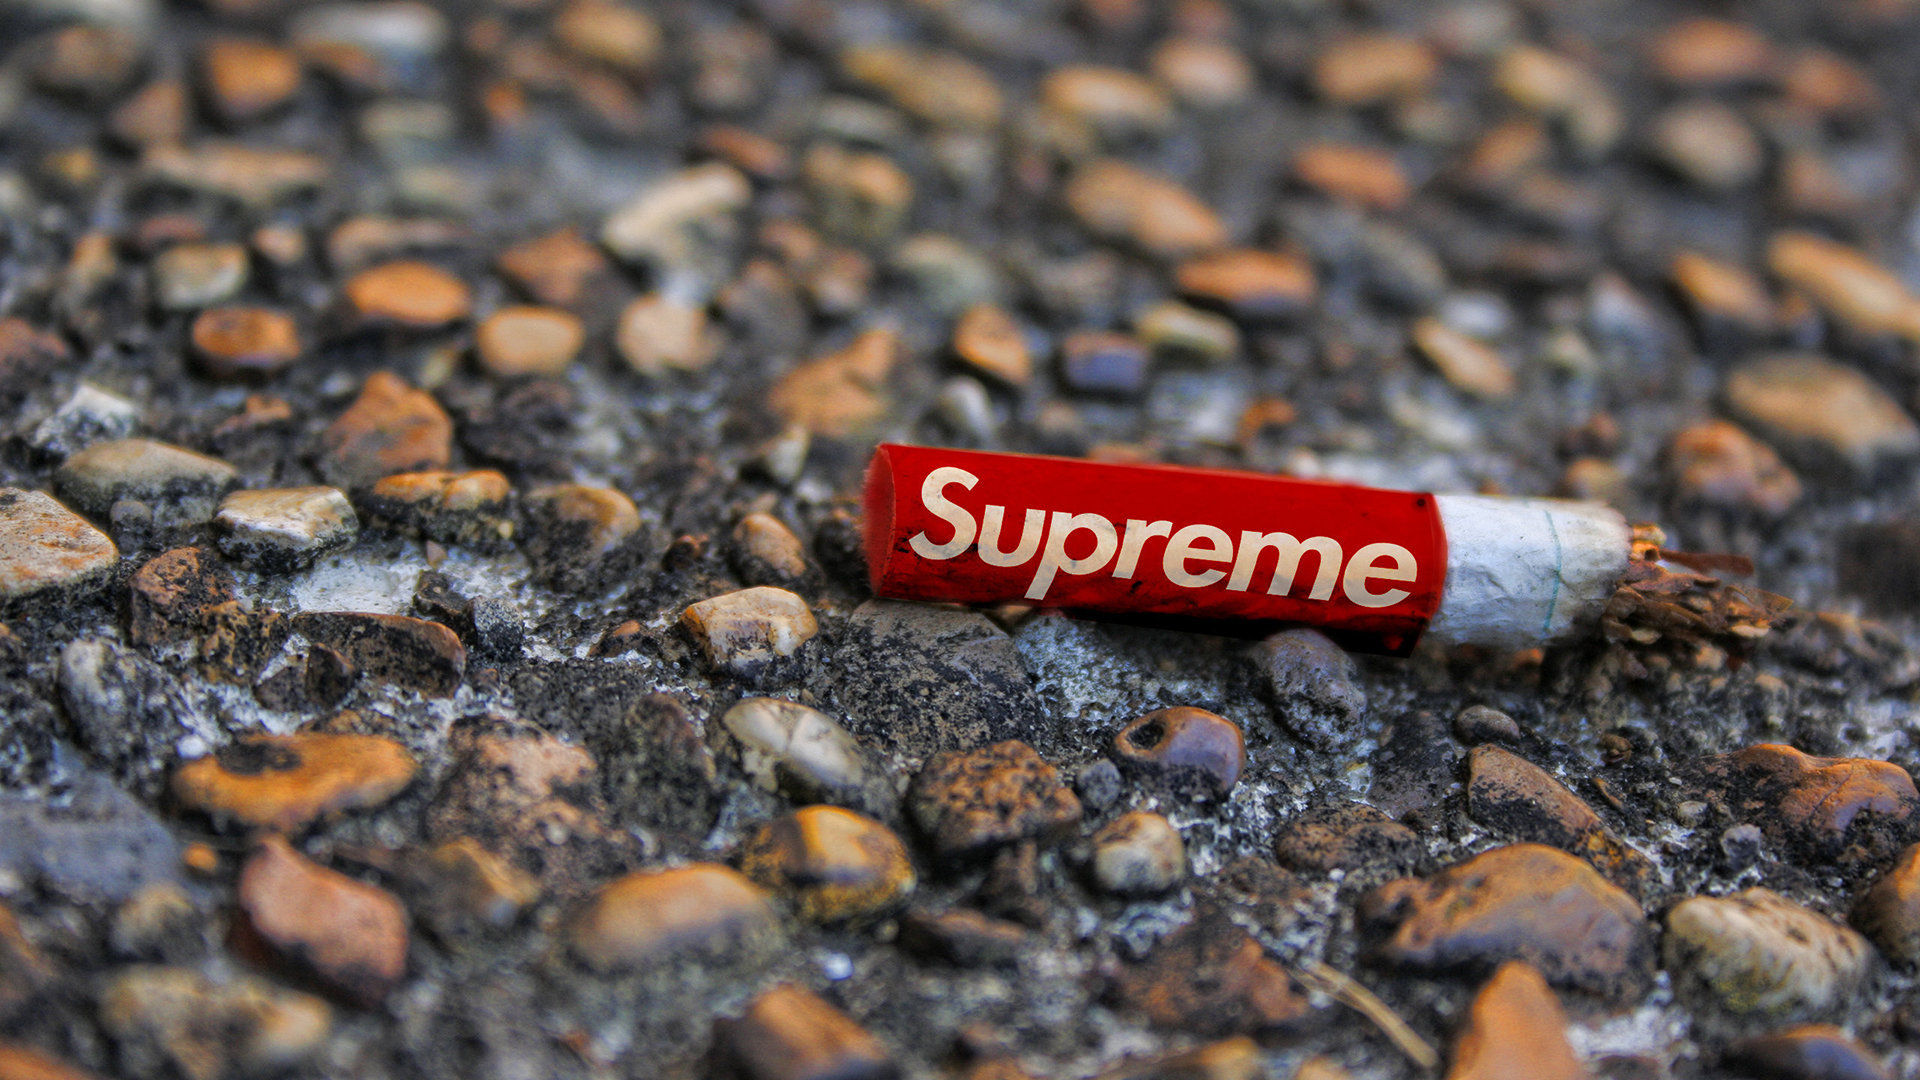 Supreme Cigarette Wallpaper